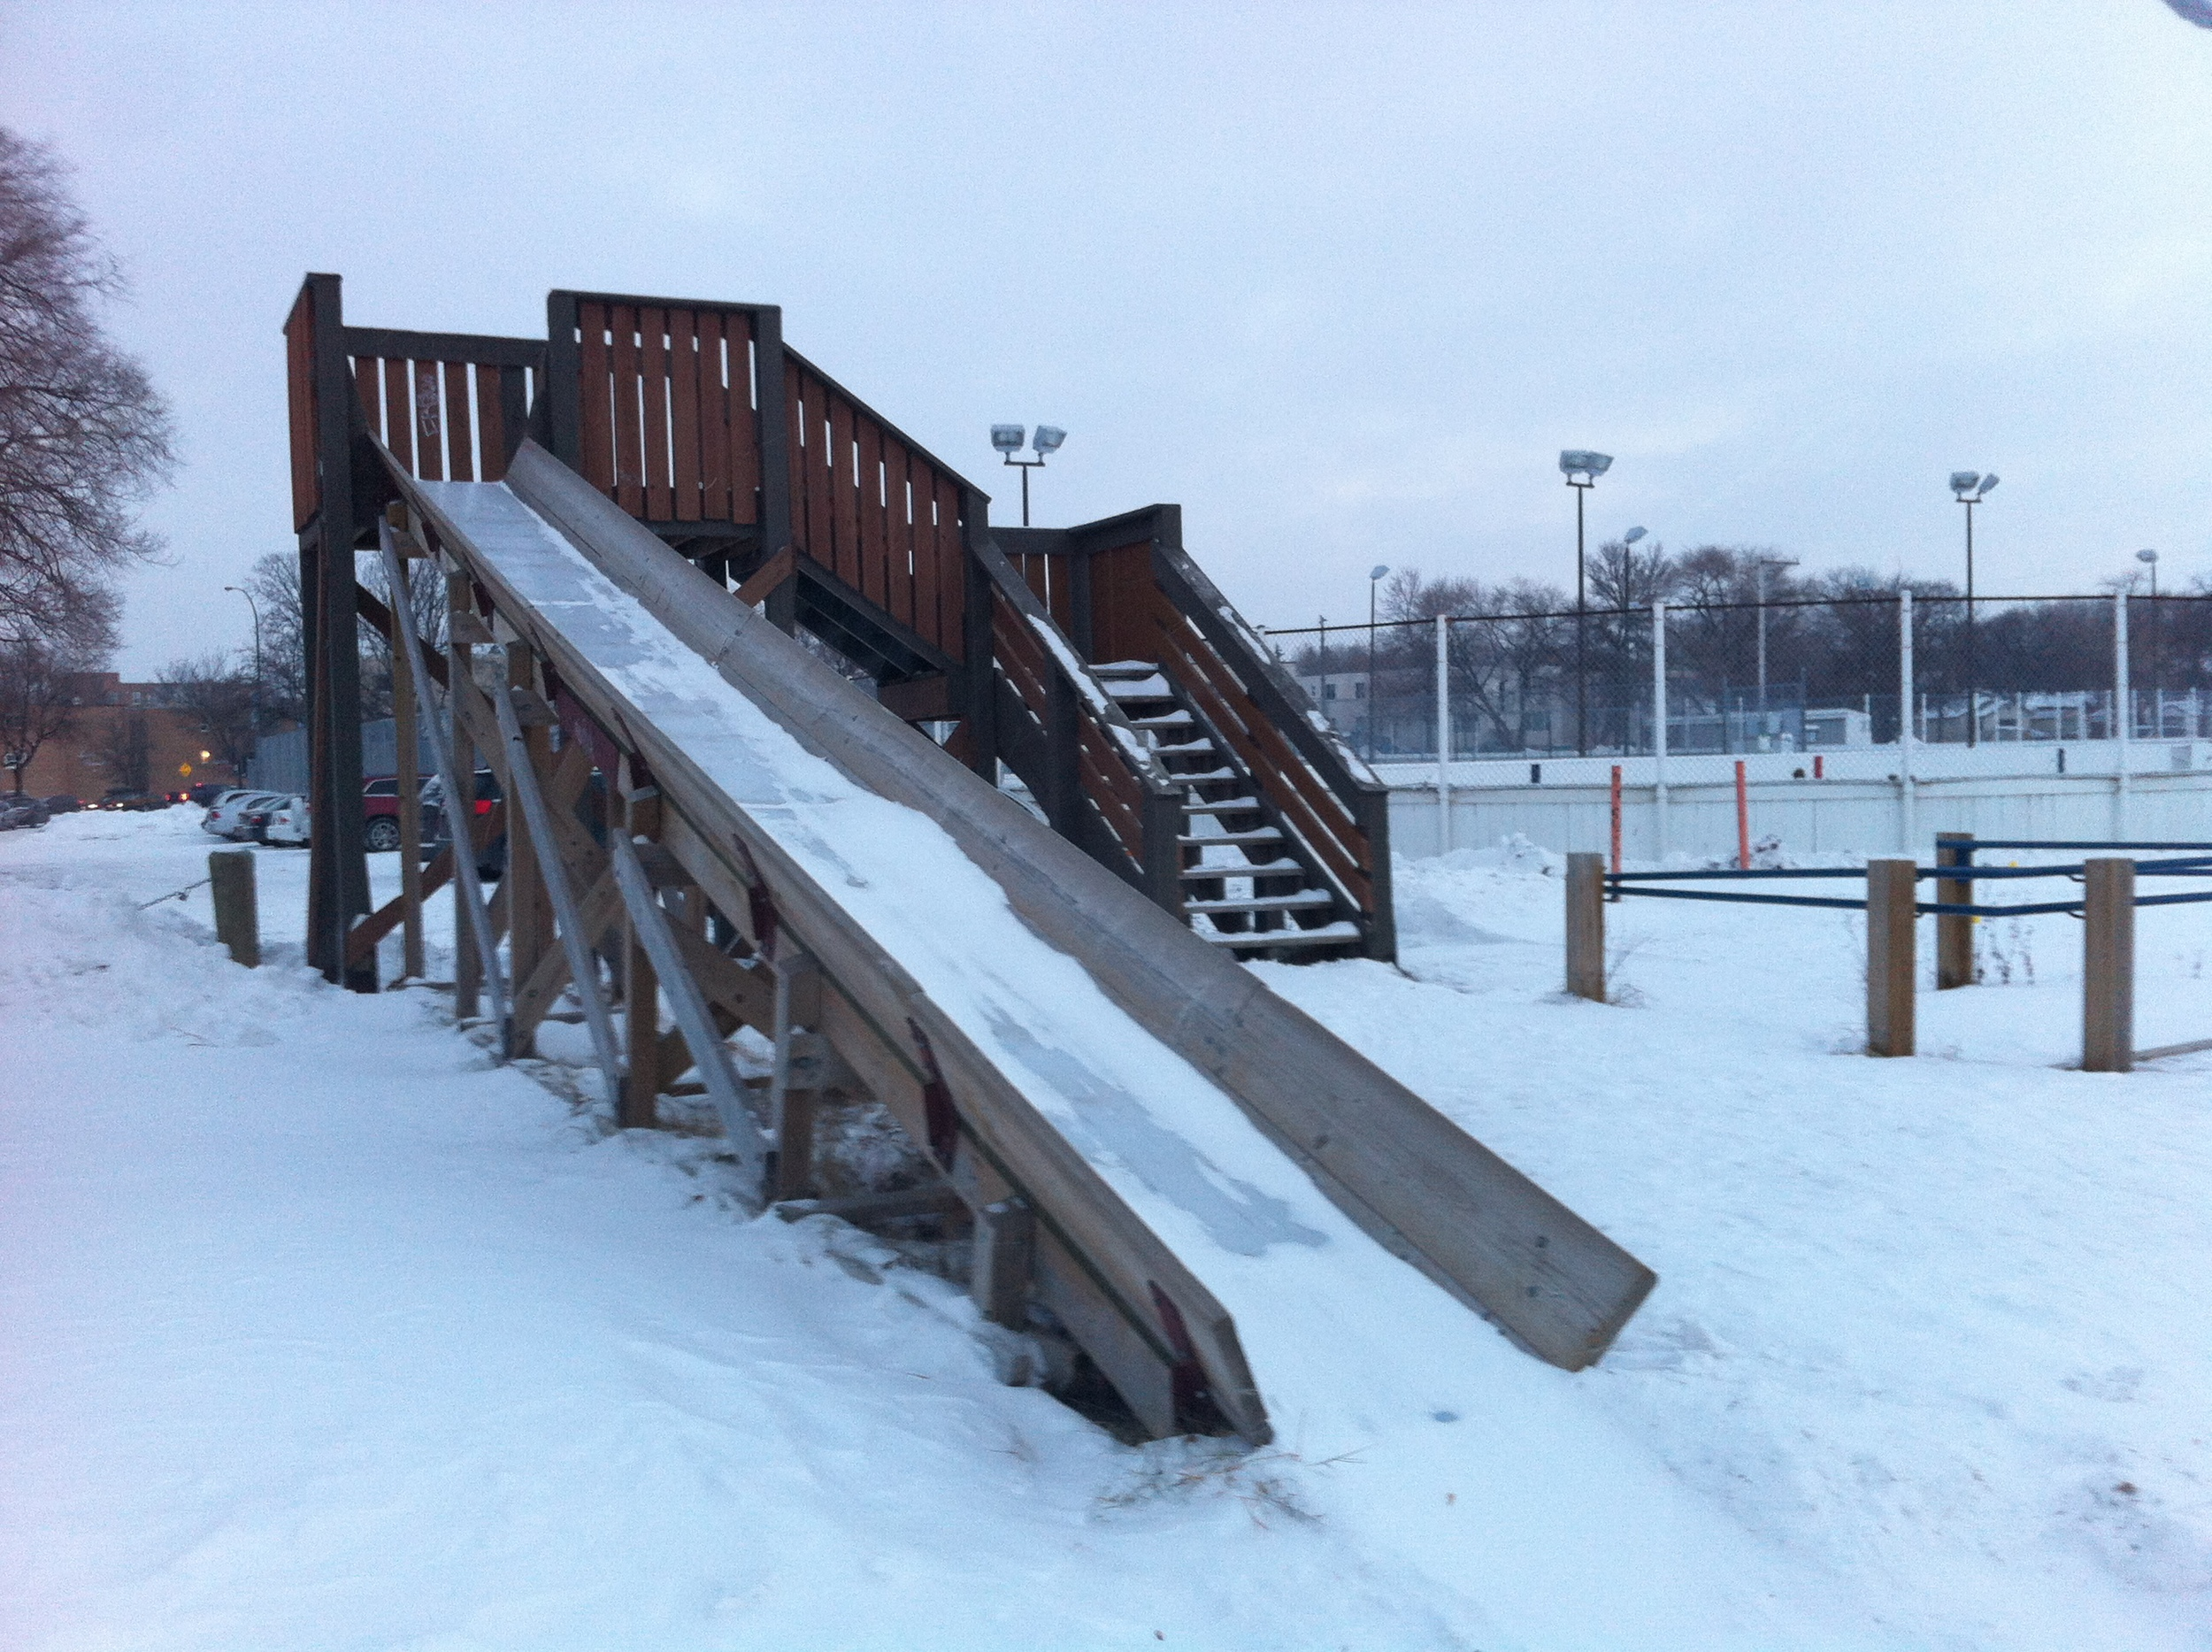 I found this old relic of a toboggan slide in a playground area with an outdoor rink and summer playing fields in Winnipeg this past November.  I have never seen these anywhere else but Winnipeg. What a great idea to make playgrounds year-round attractions for families.